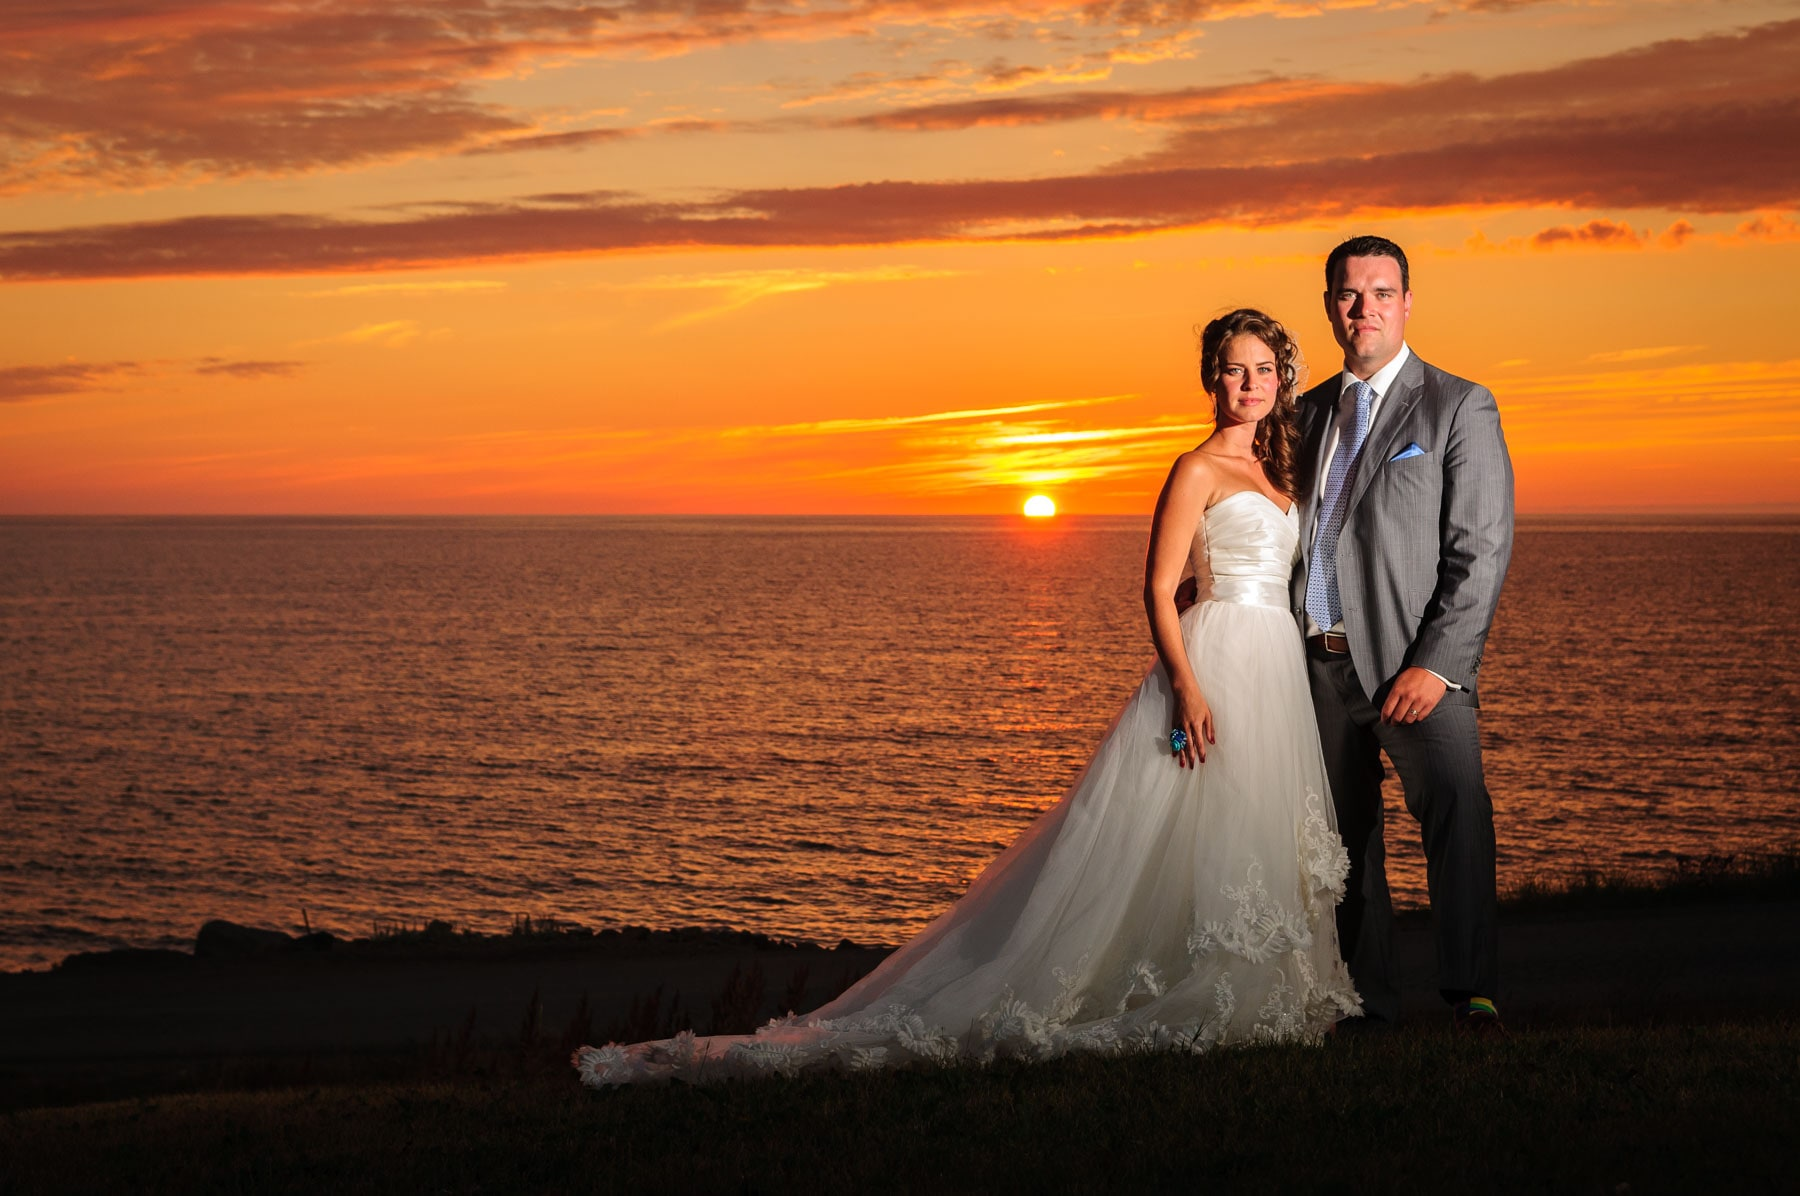 Wedding photo with Cape Breton sunset